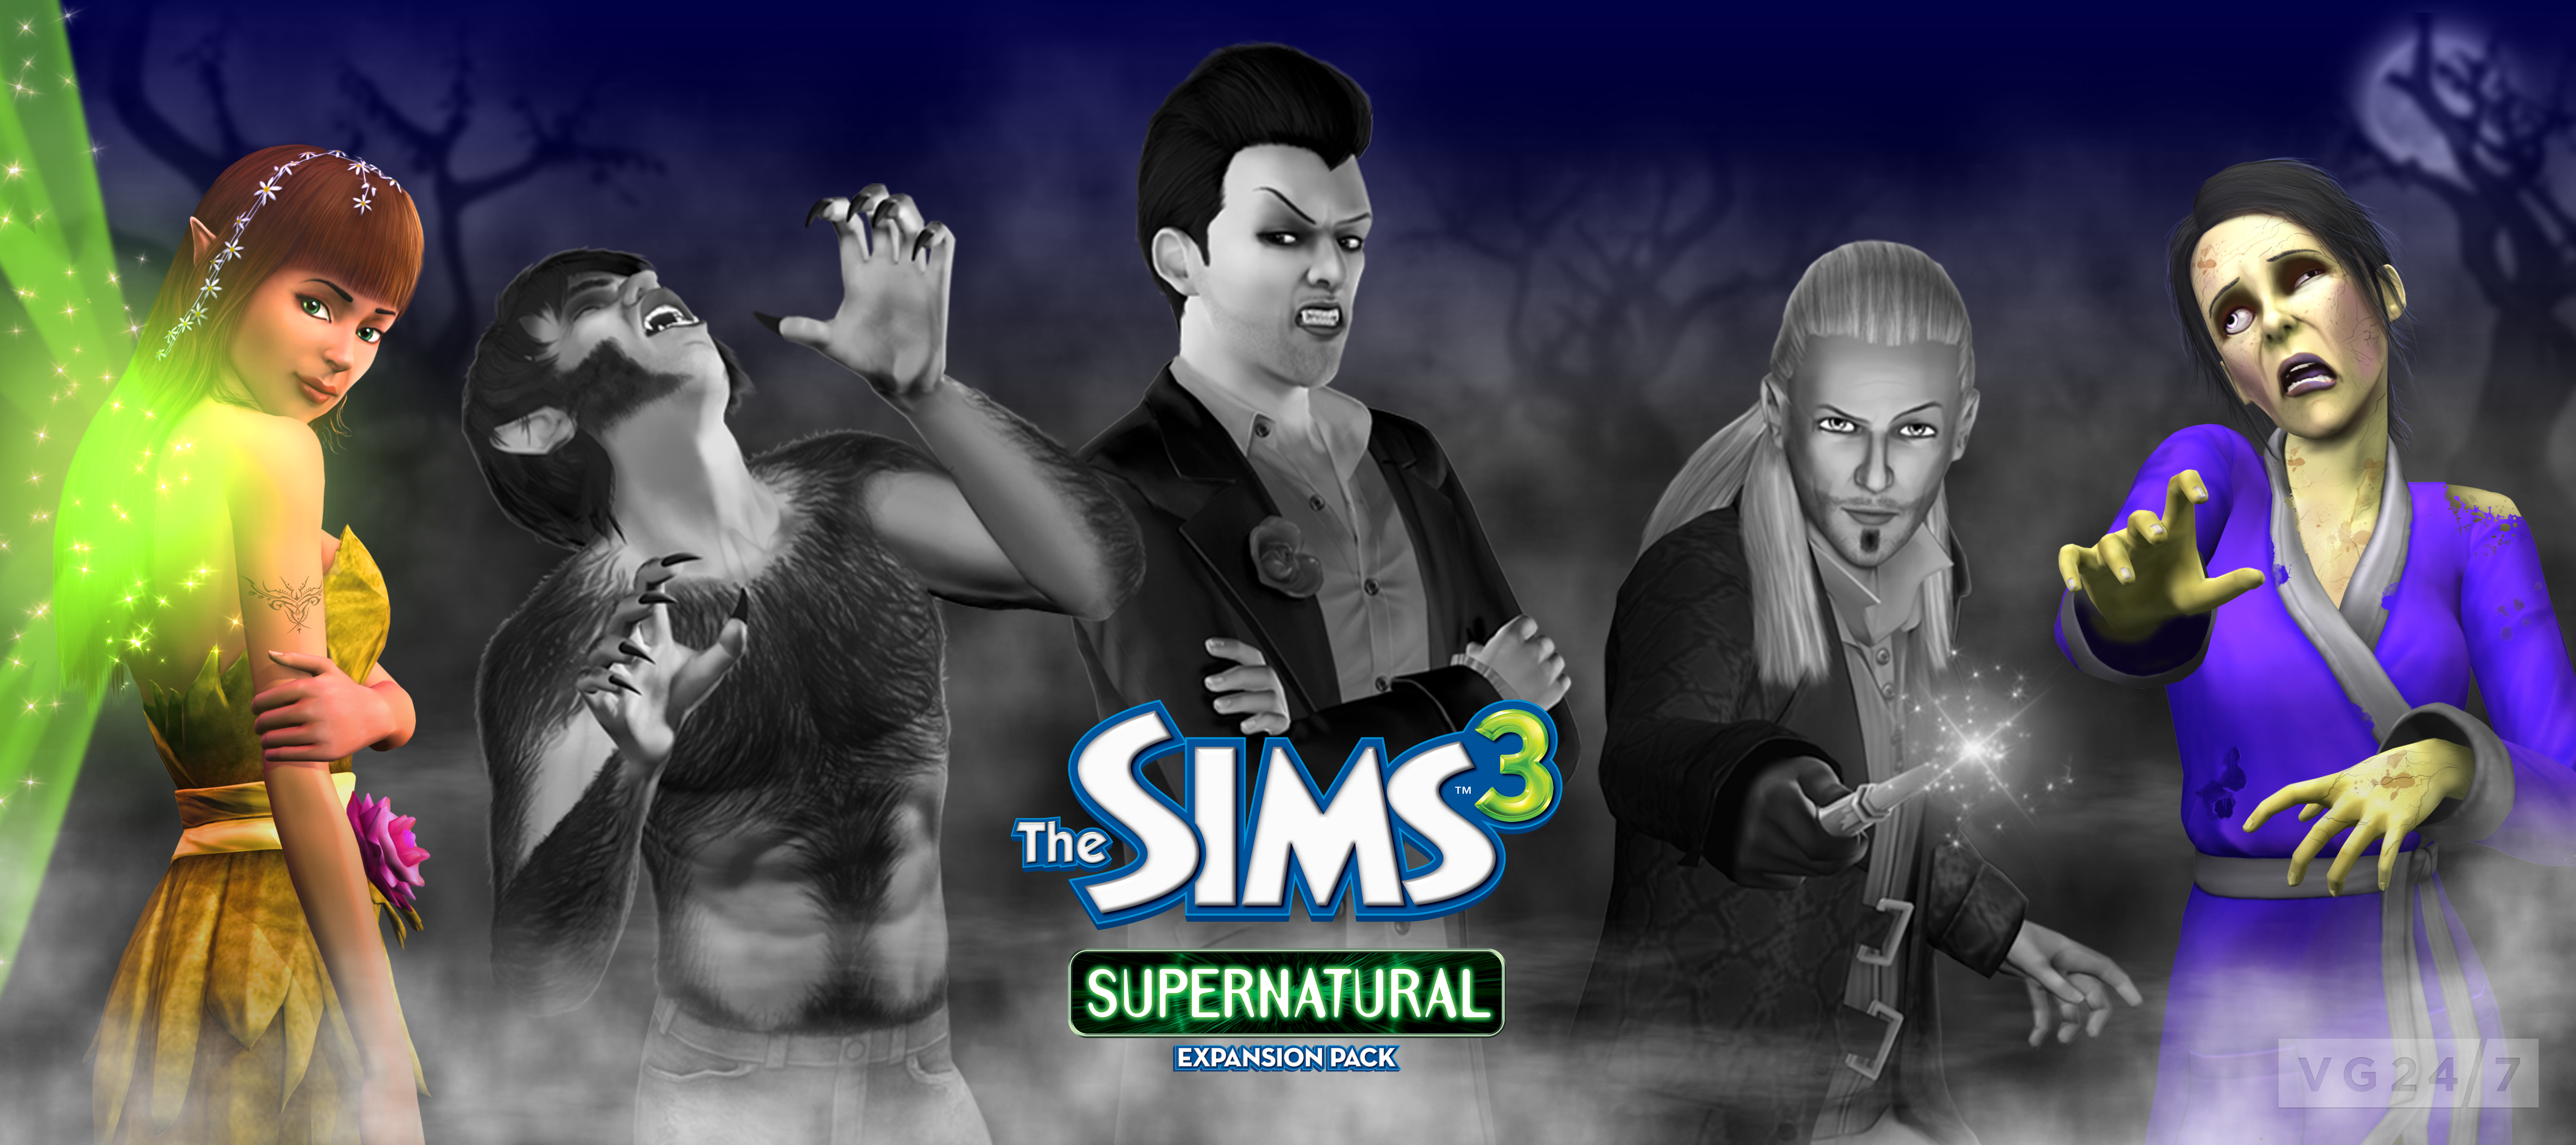 The sims 3 supernatural: werewolf abilities youtube.